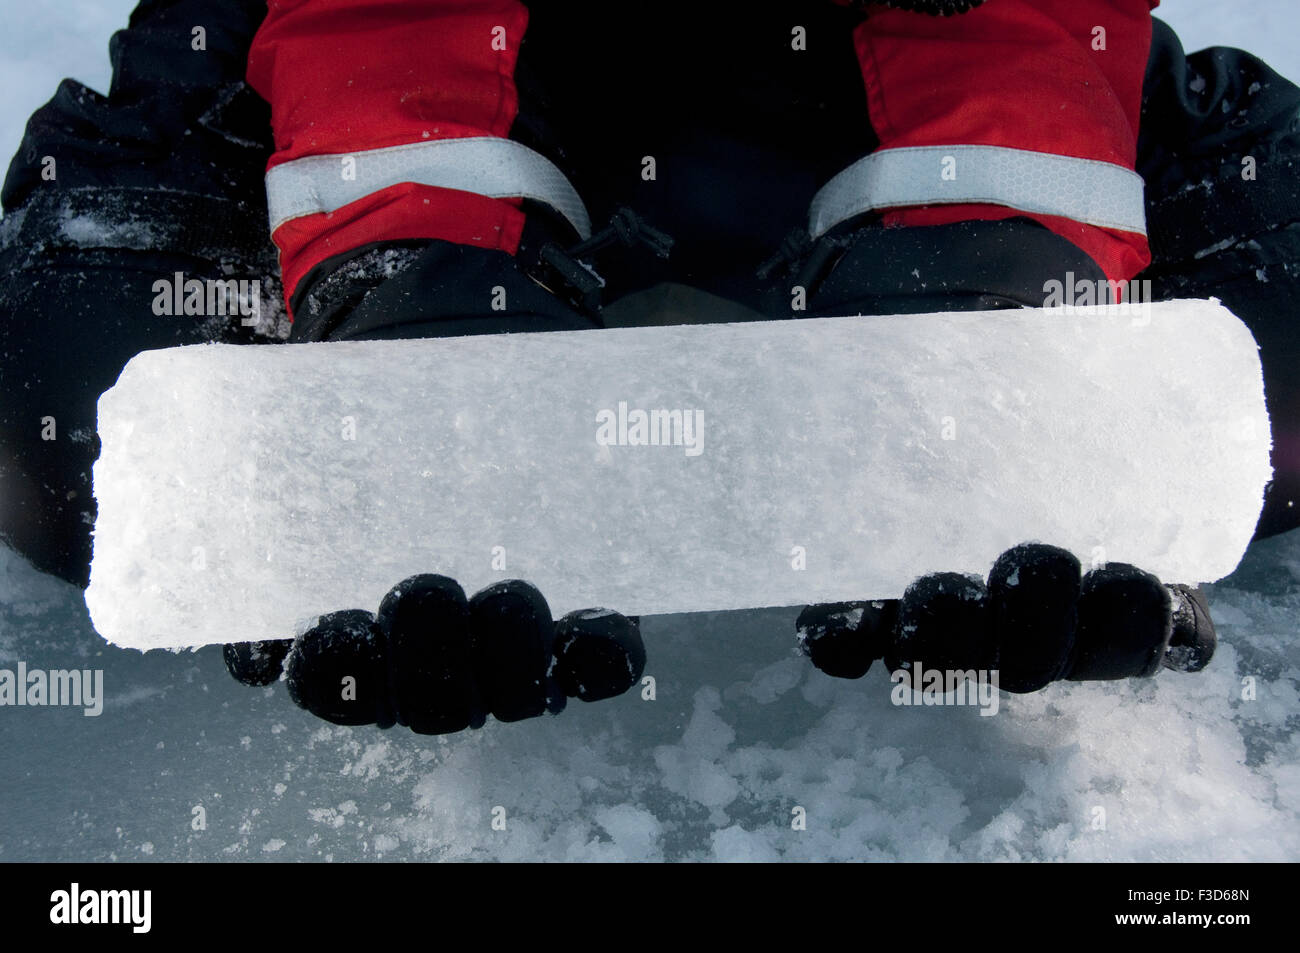 A scientist holds an ice core recently drilled from the Arctic Ocean icepack. - Stock Image